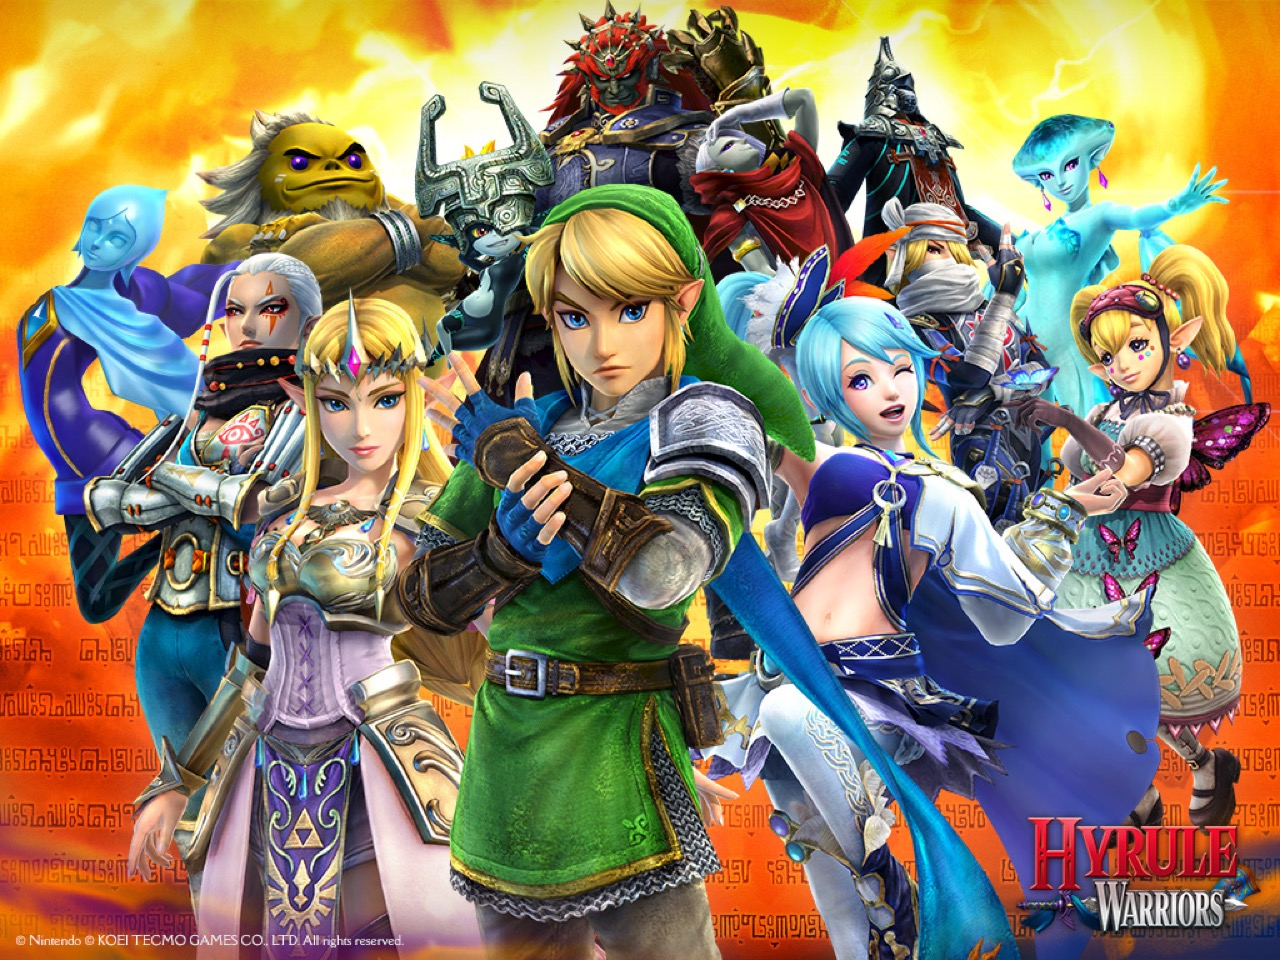 10 Characters We Want in Hyrule Warriors